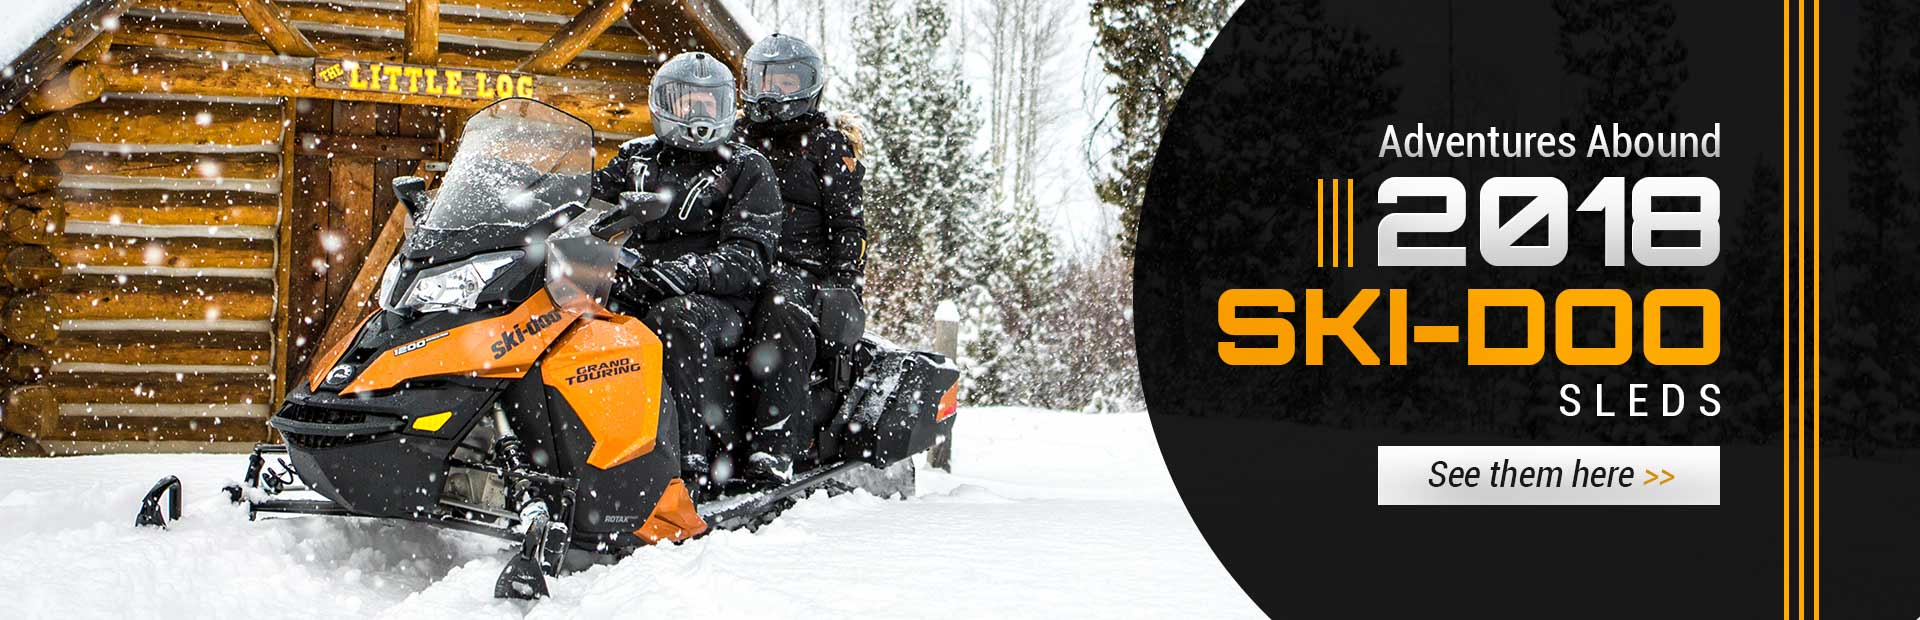 2018 Ski-Doo Sleds: Click here to view the models.